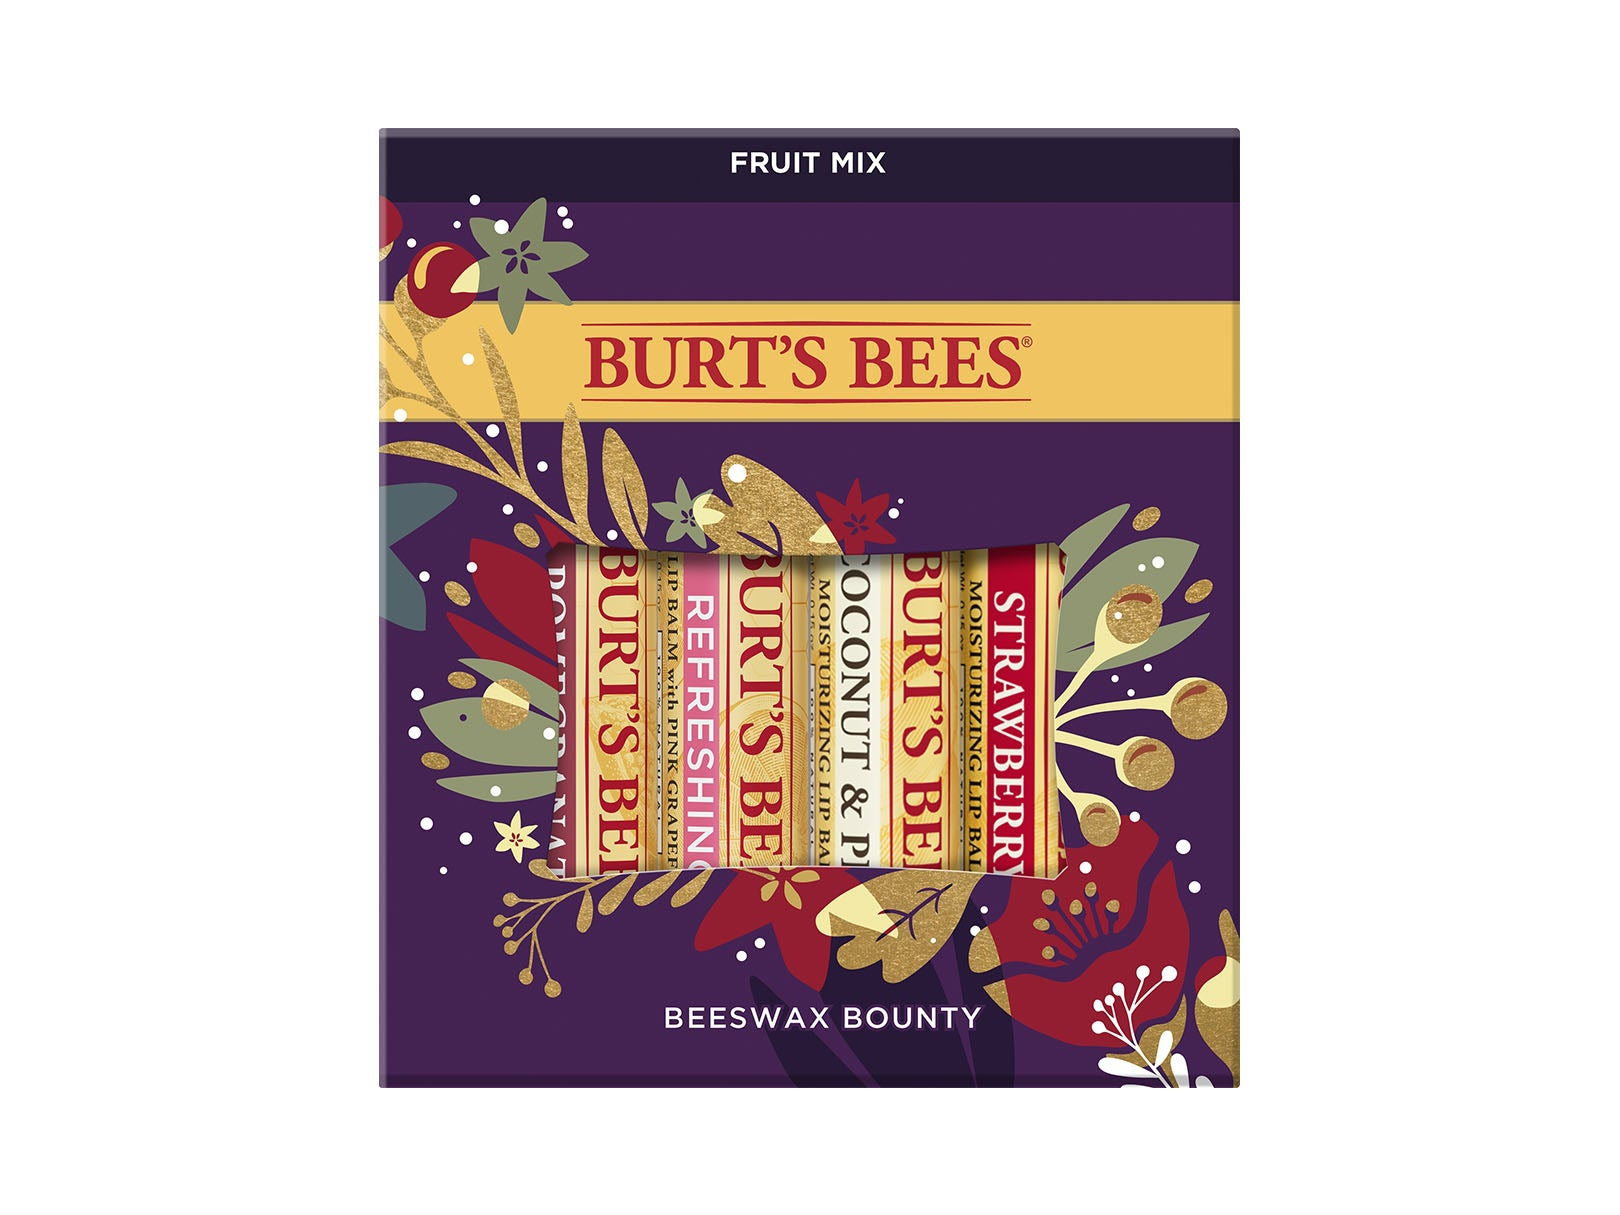 Burt's Bees Beeswax Bounty Fruit Mix  Gift